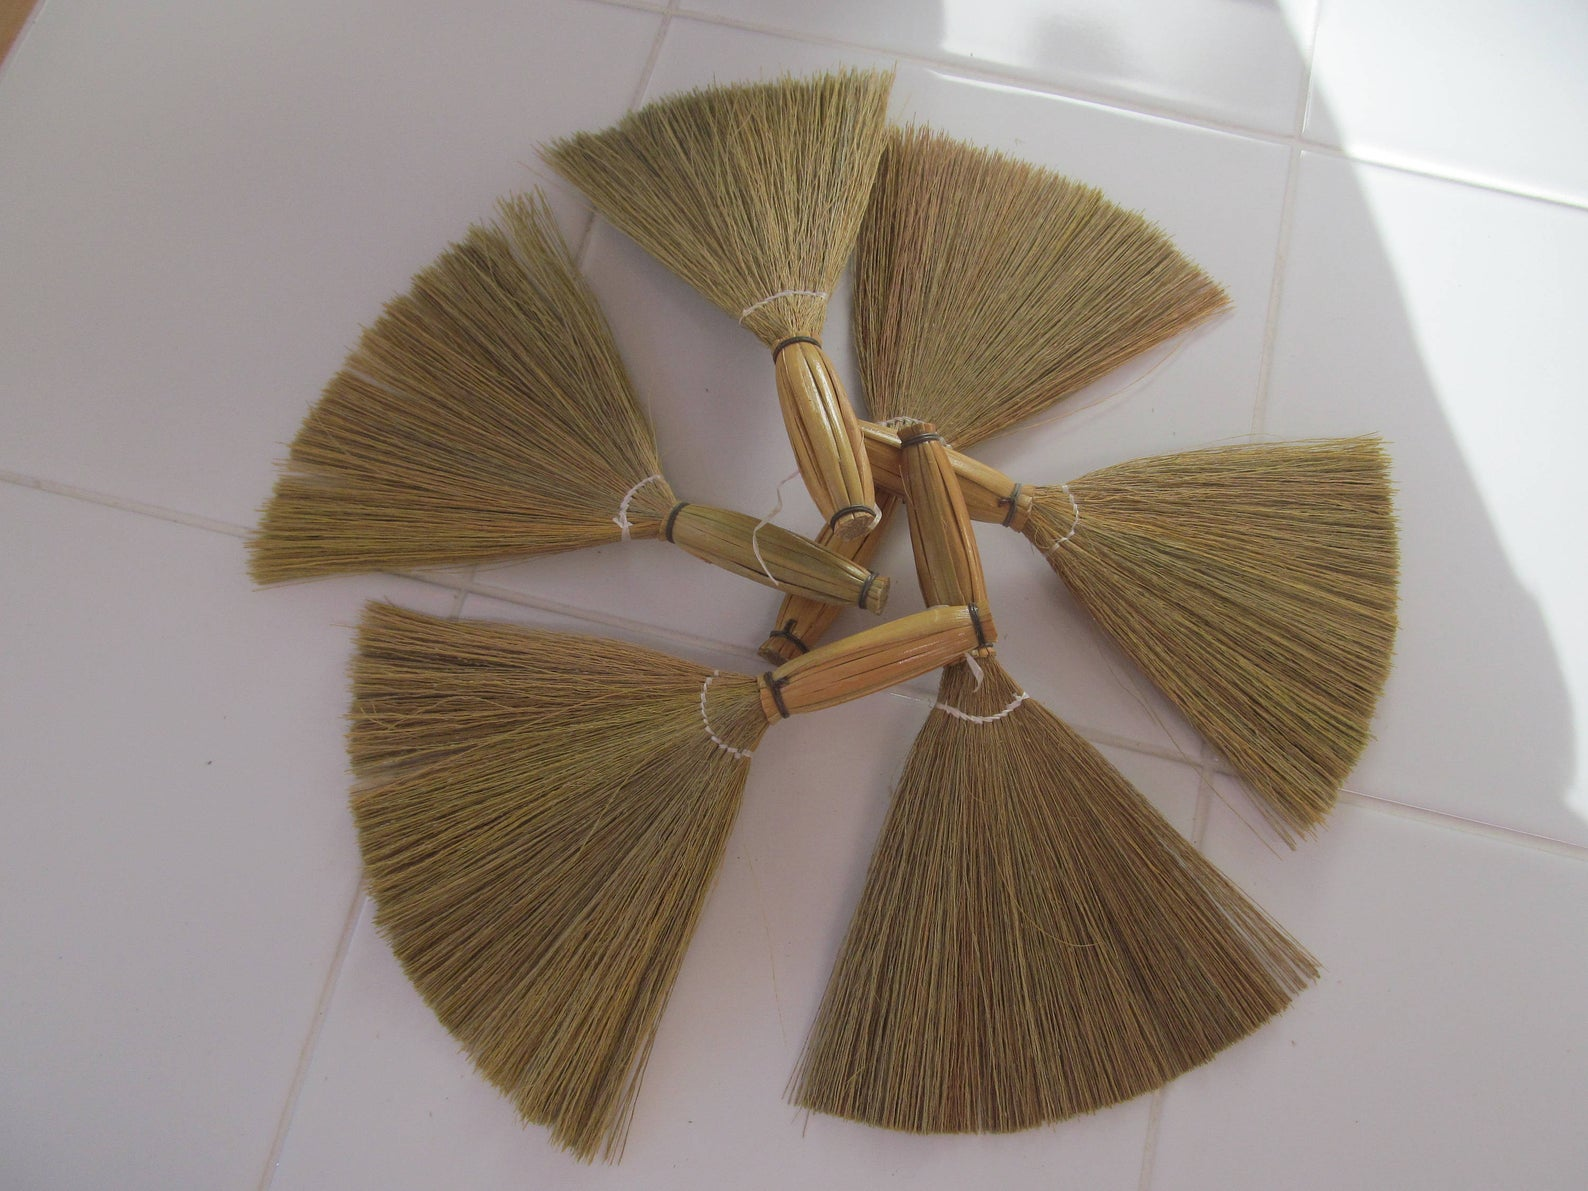 Set Of 6 Mini Brooms For Wedding Favors Or Craft Projects | Wedding Broom Favor | Broom Dolls